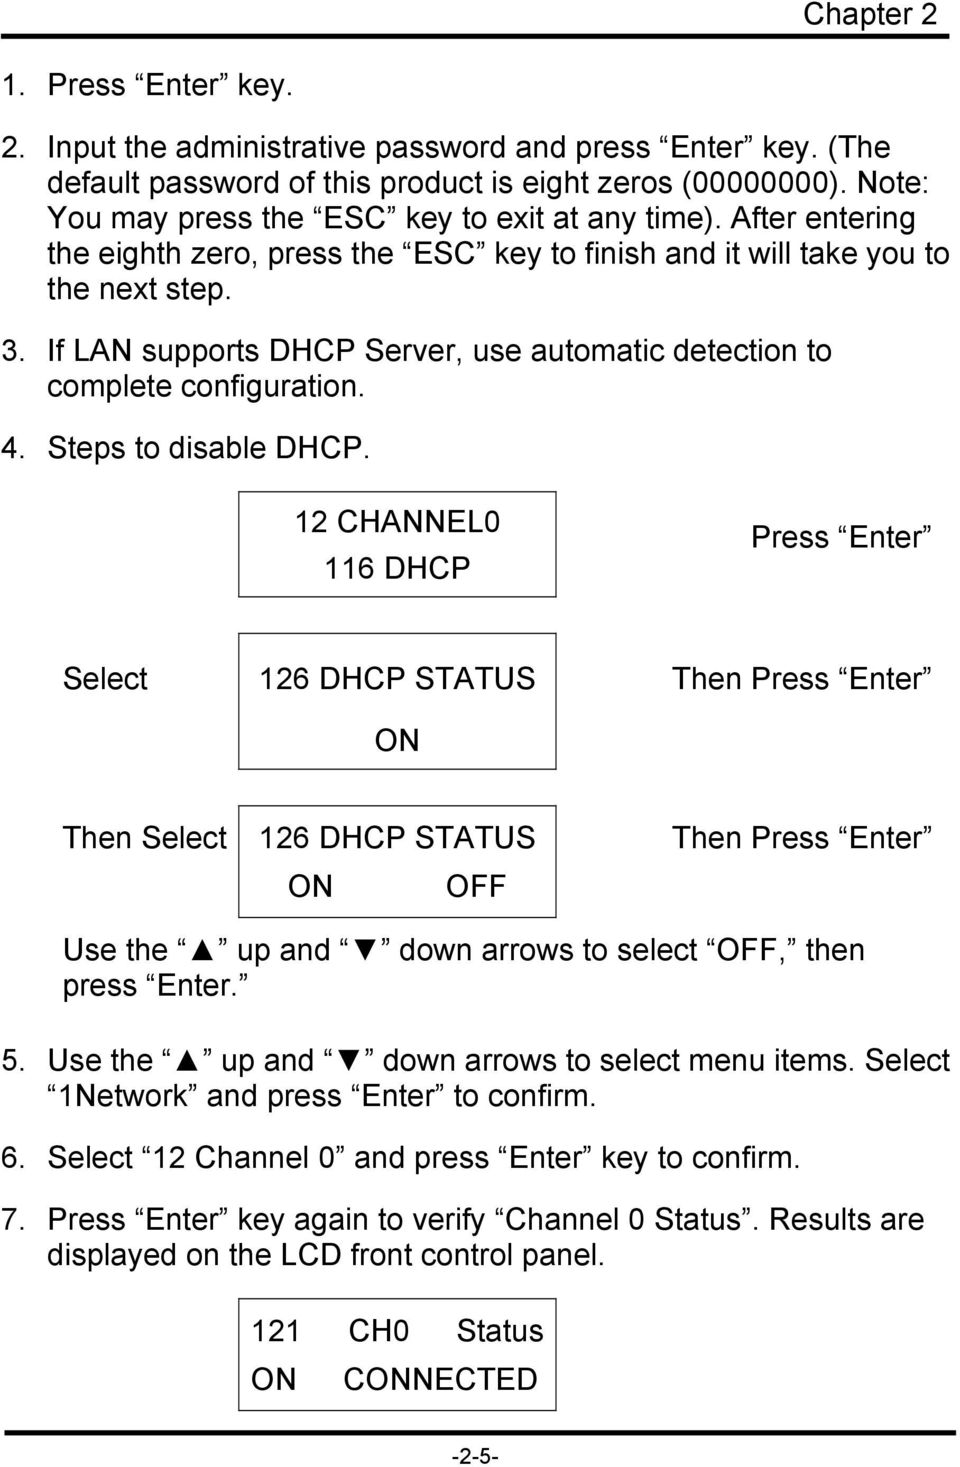 If LAN supports DHCP Server, use automatic detection to complete configuration. 4. Steps to disable DHCP.